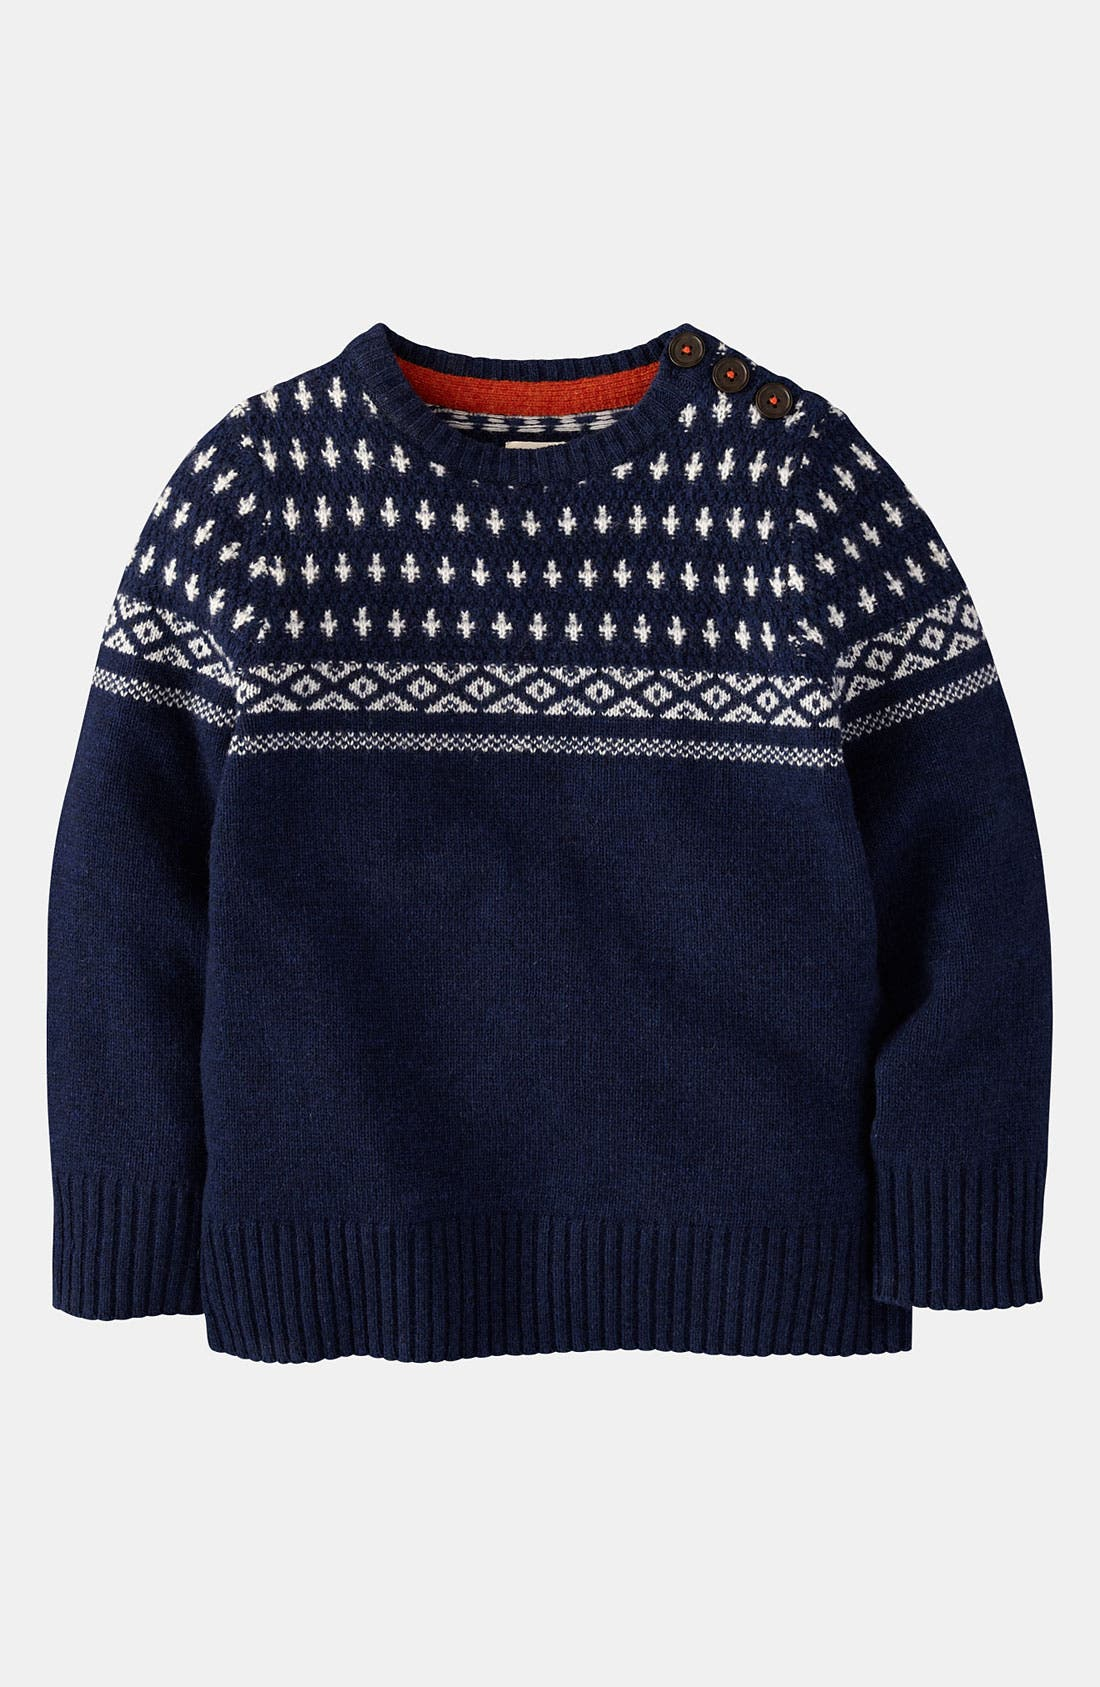 Main Image - Mini Boden Sweater (Toddler, Little Boys & Big Boys)